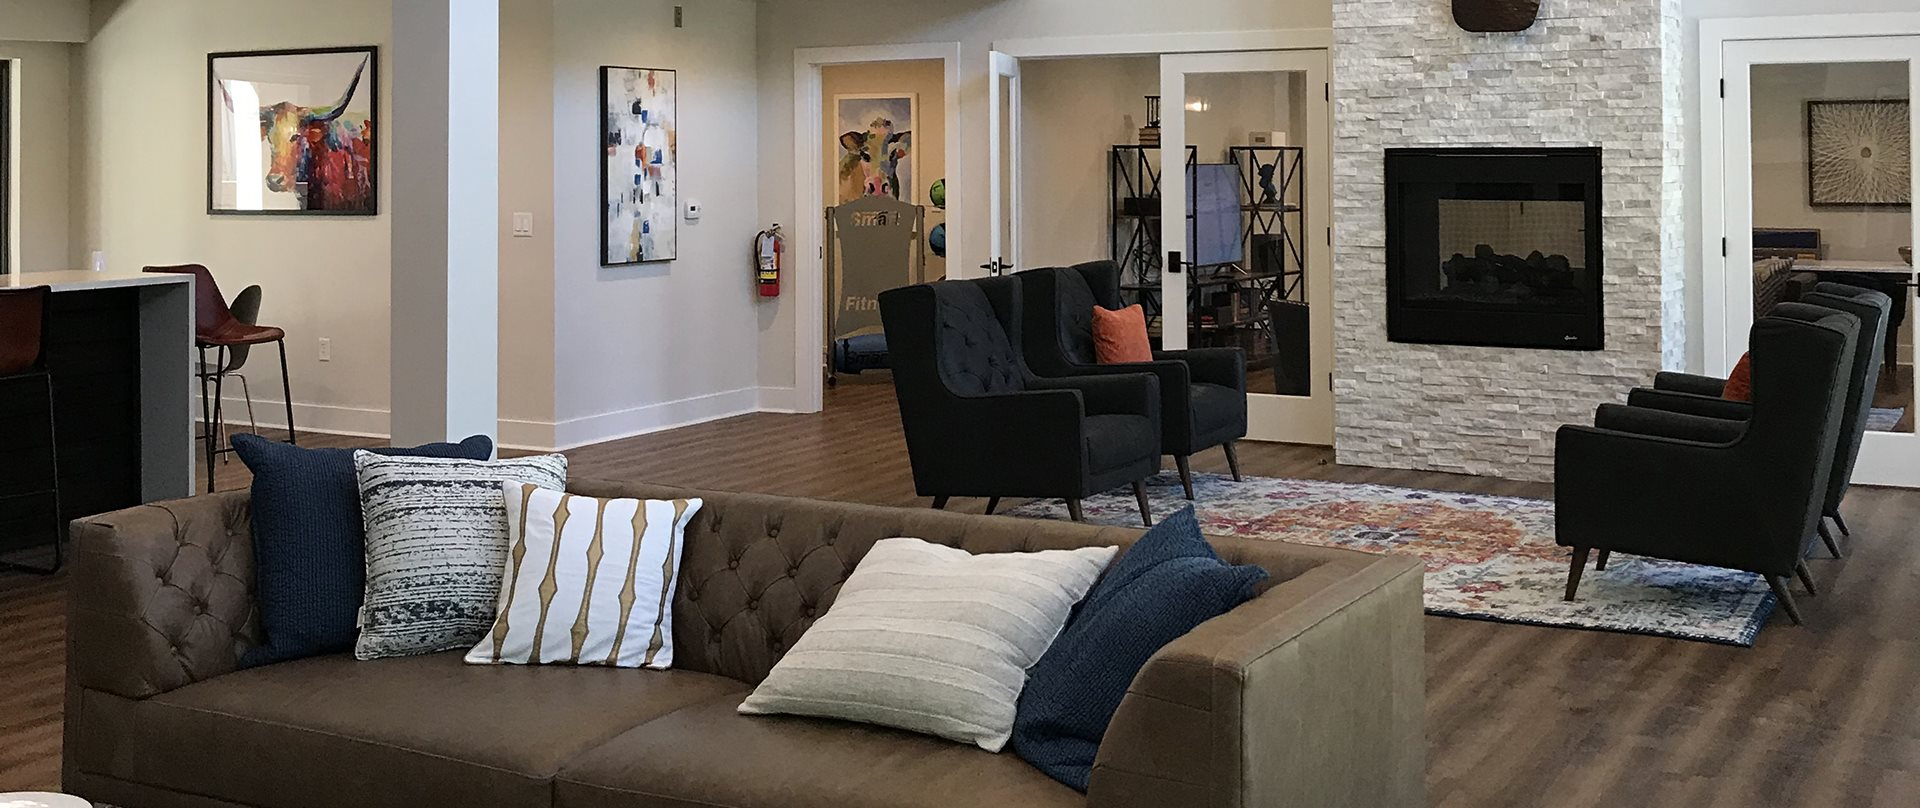 The Creek Apartments For Rent L Round Rock Tx 78664